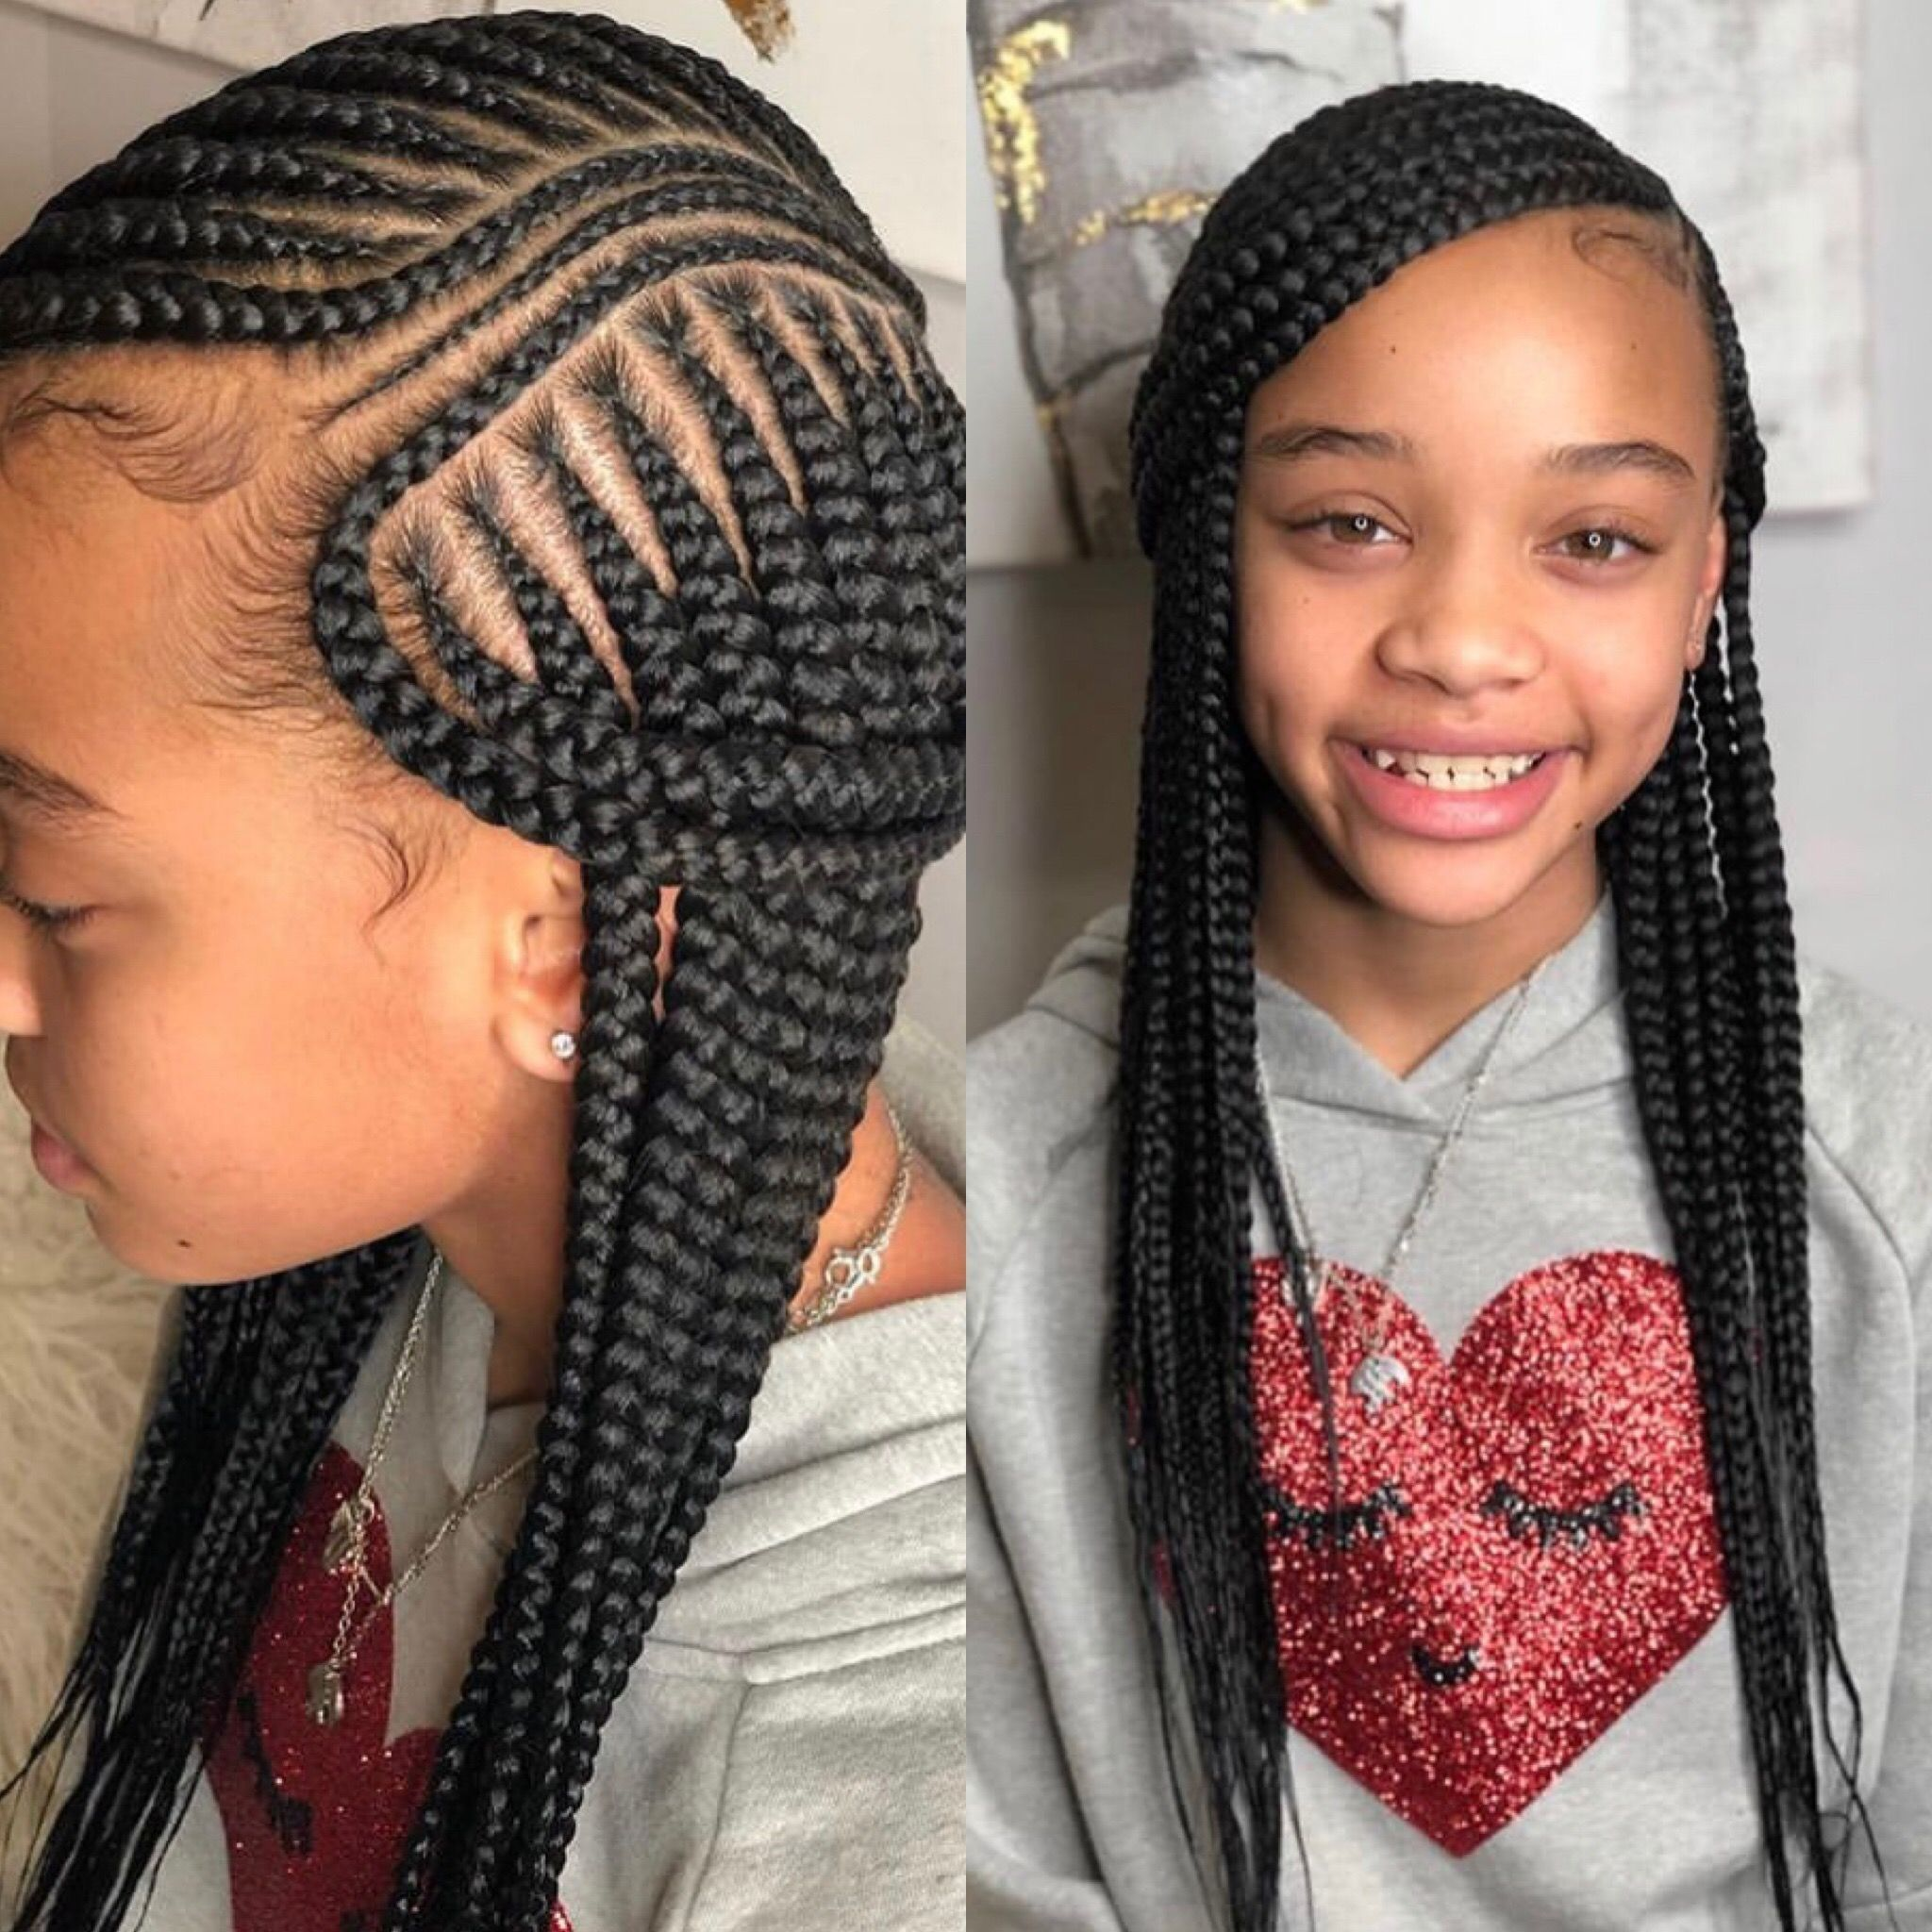 15 Latest Lil Girl Braided Hairstyle Latets 14 Photo Natural Hair Style In 2019 Na In 2020 Kids Braided Hairstyles Black Kids Hairstyles African Braids Hairstyles